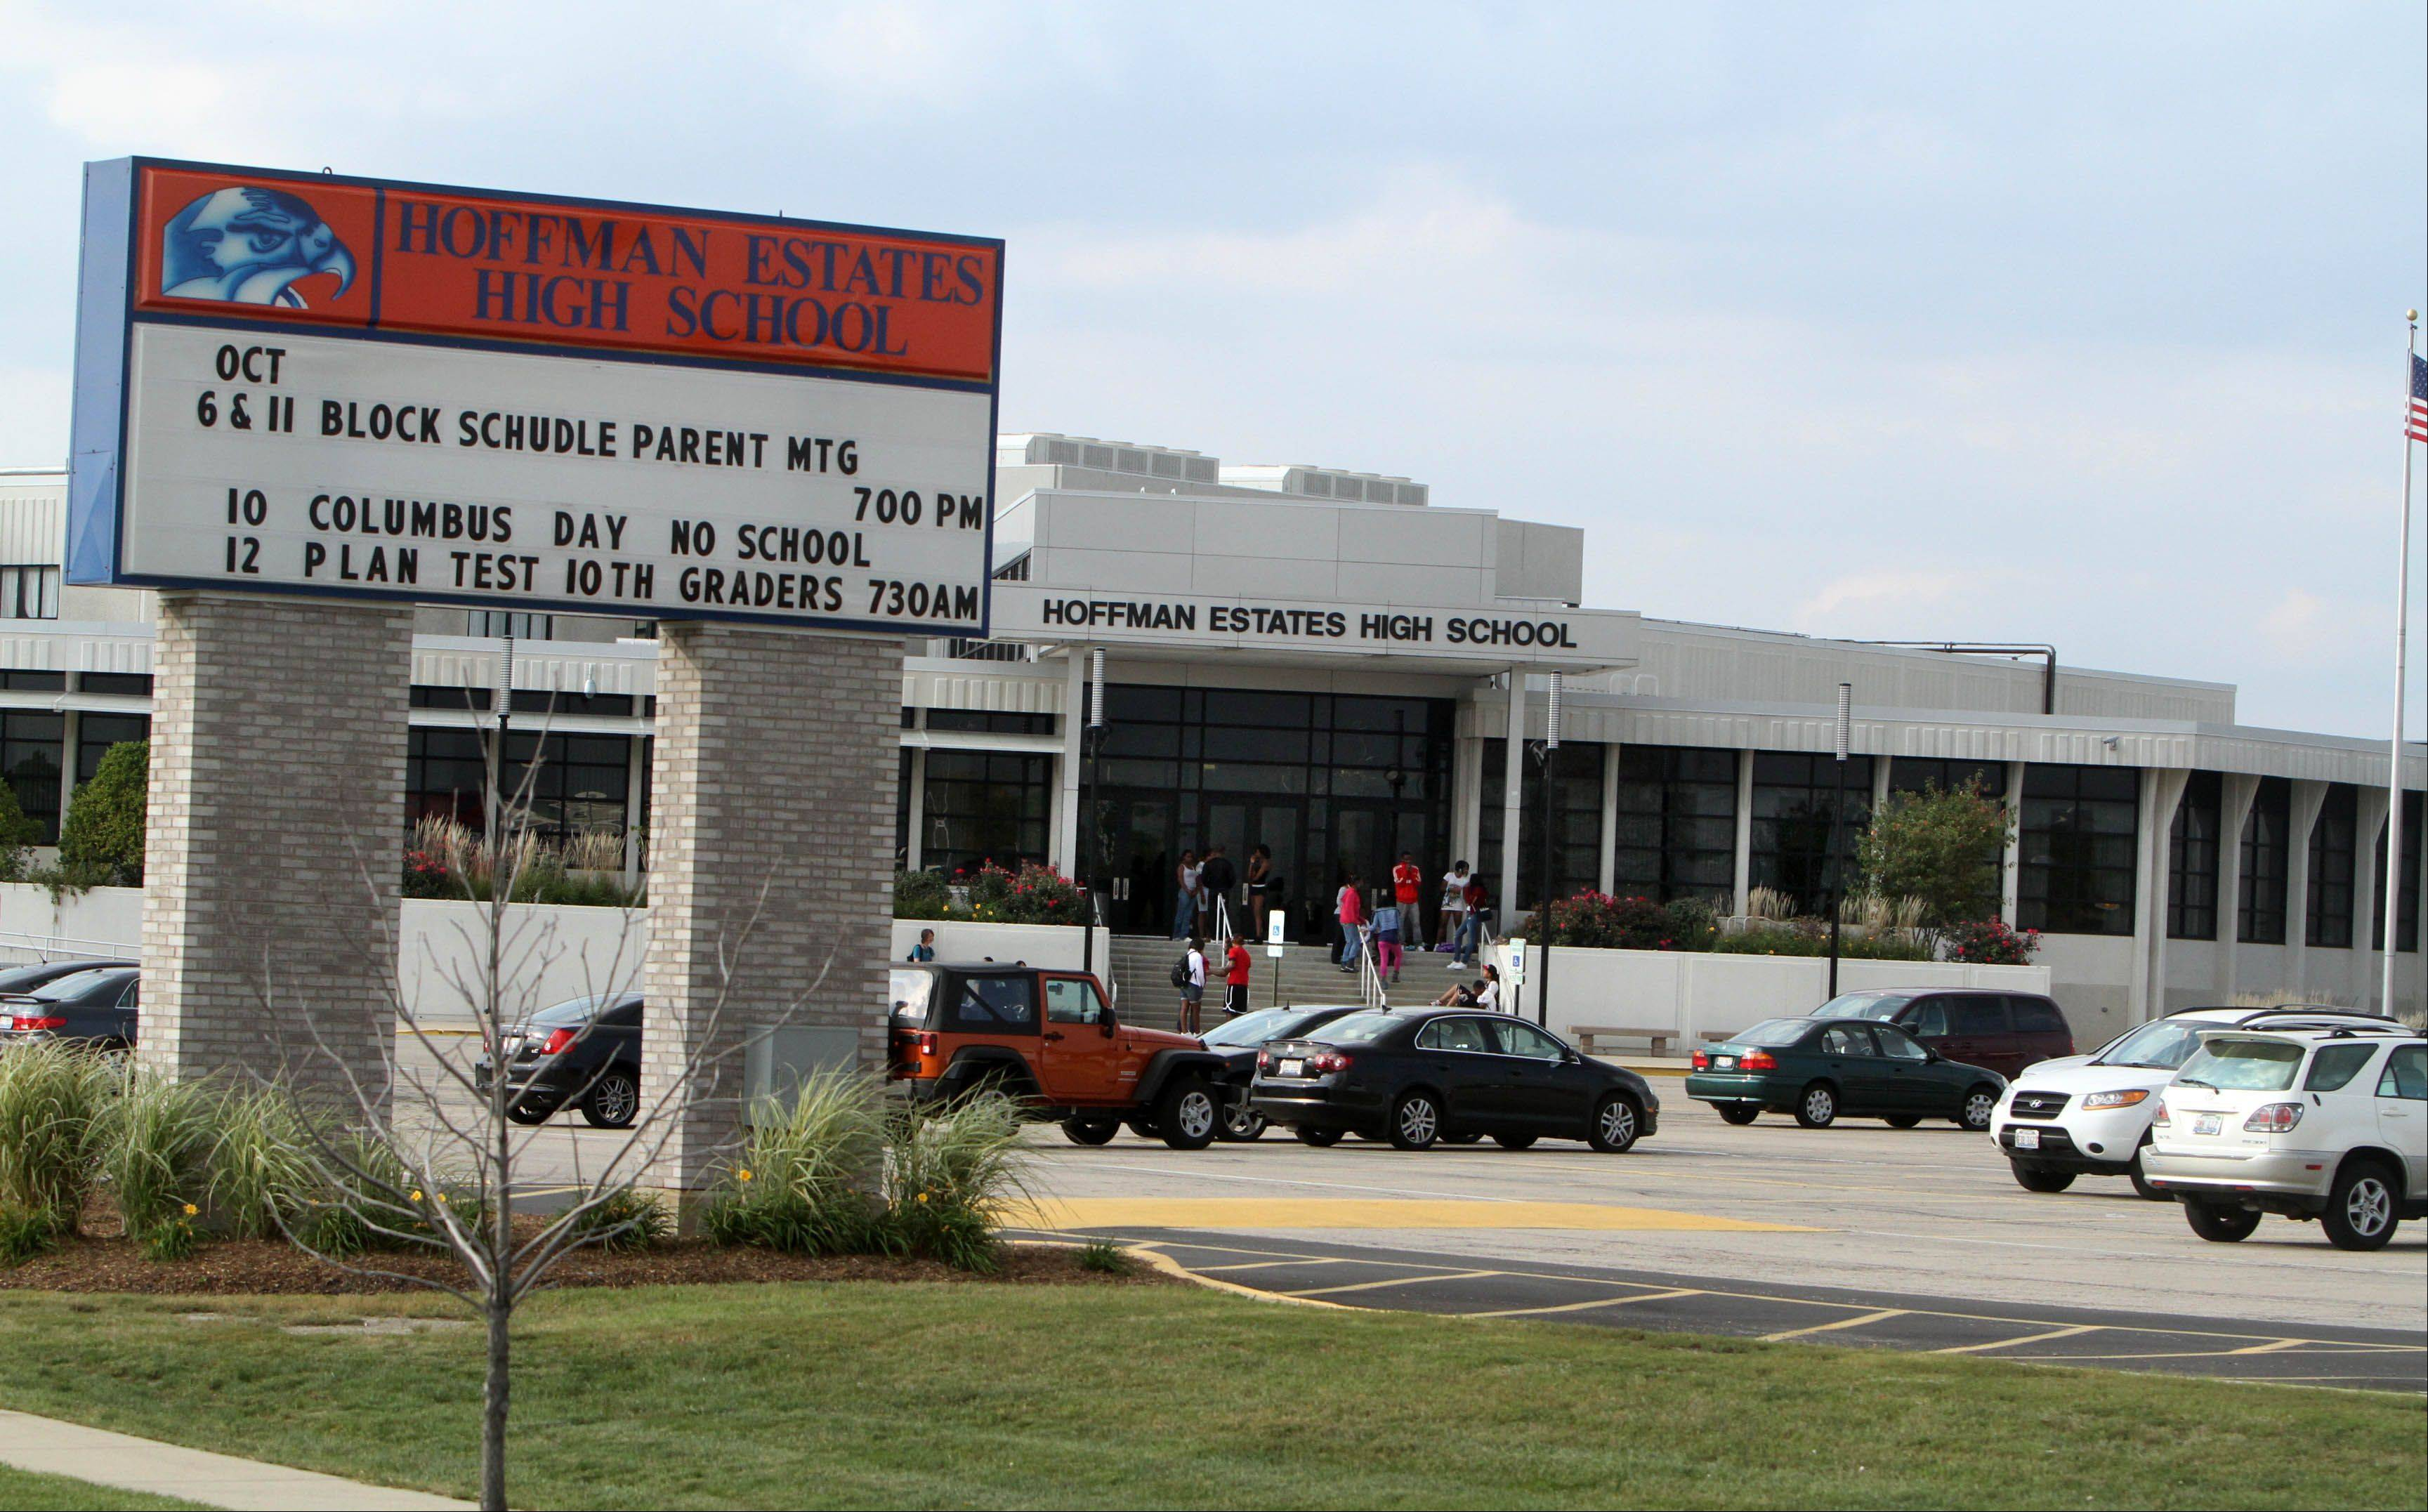 Hazing allegations involving Hoffman Estates team forces canceled game